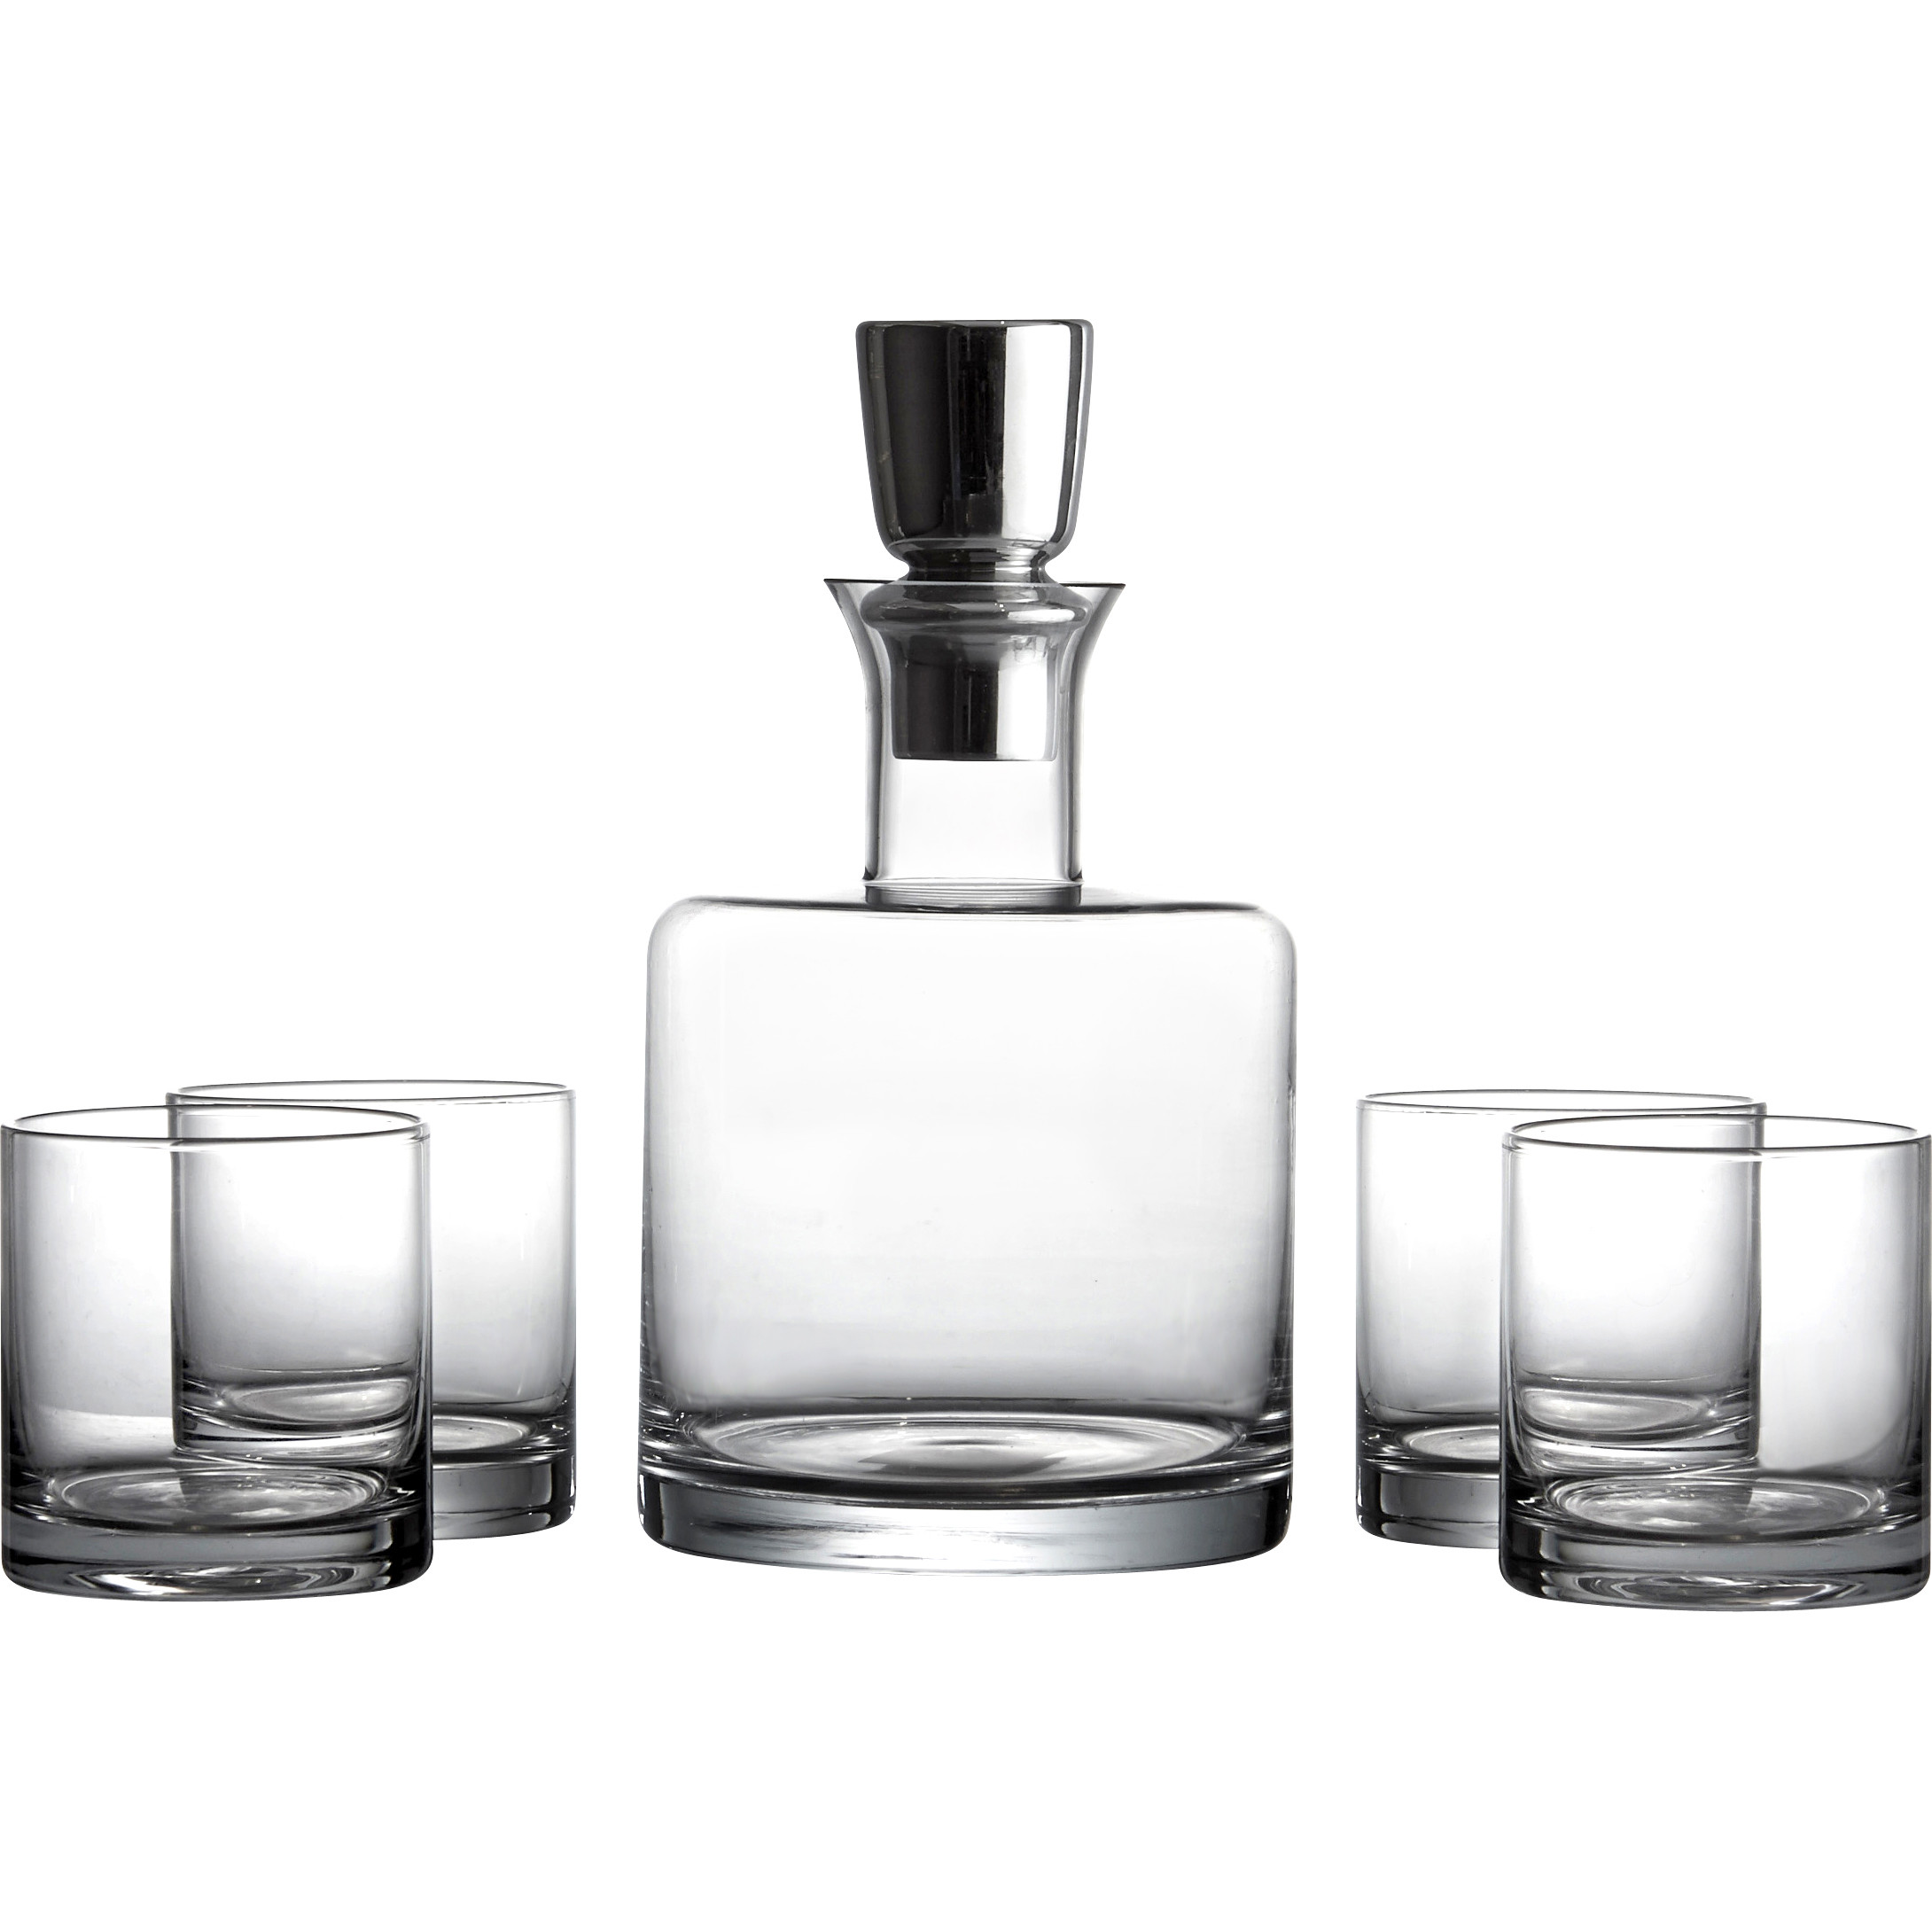 Interesting decanter set for dining sets ideas with crystal decanter set